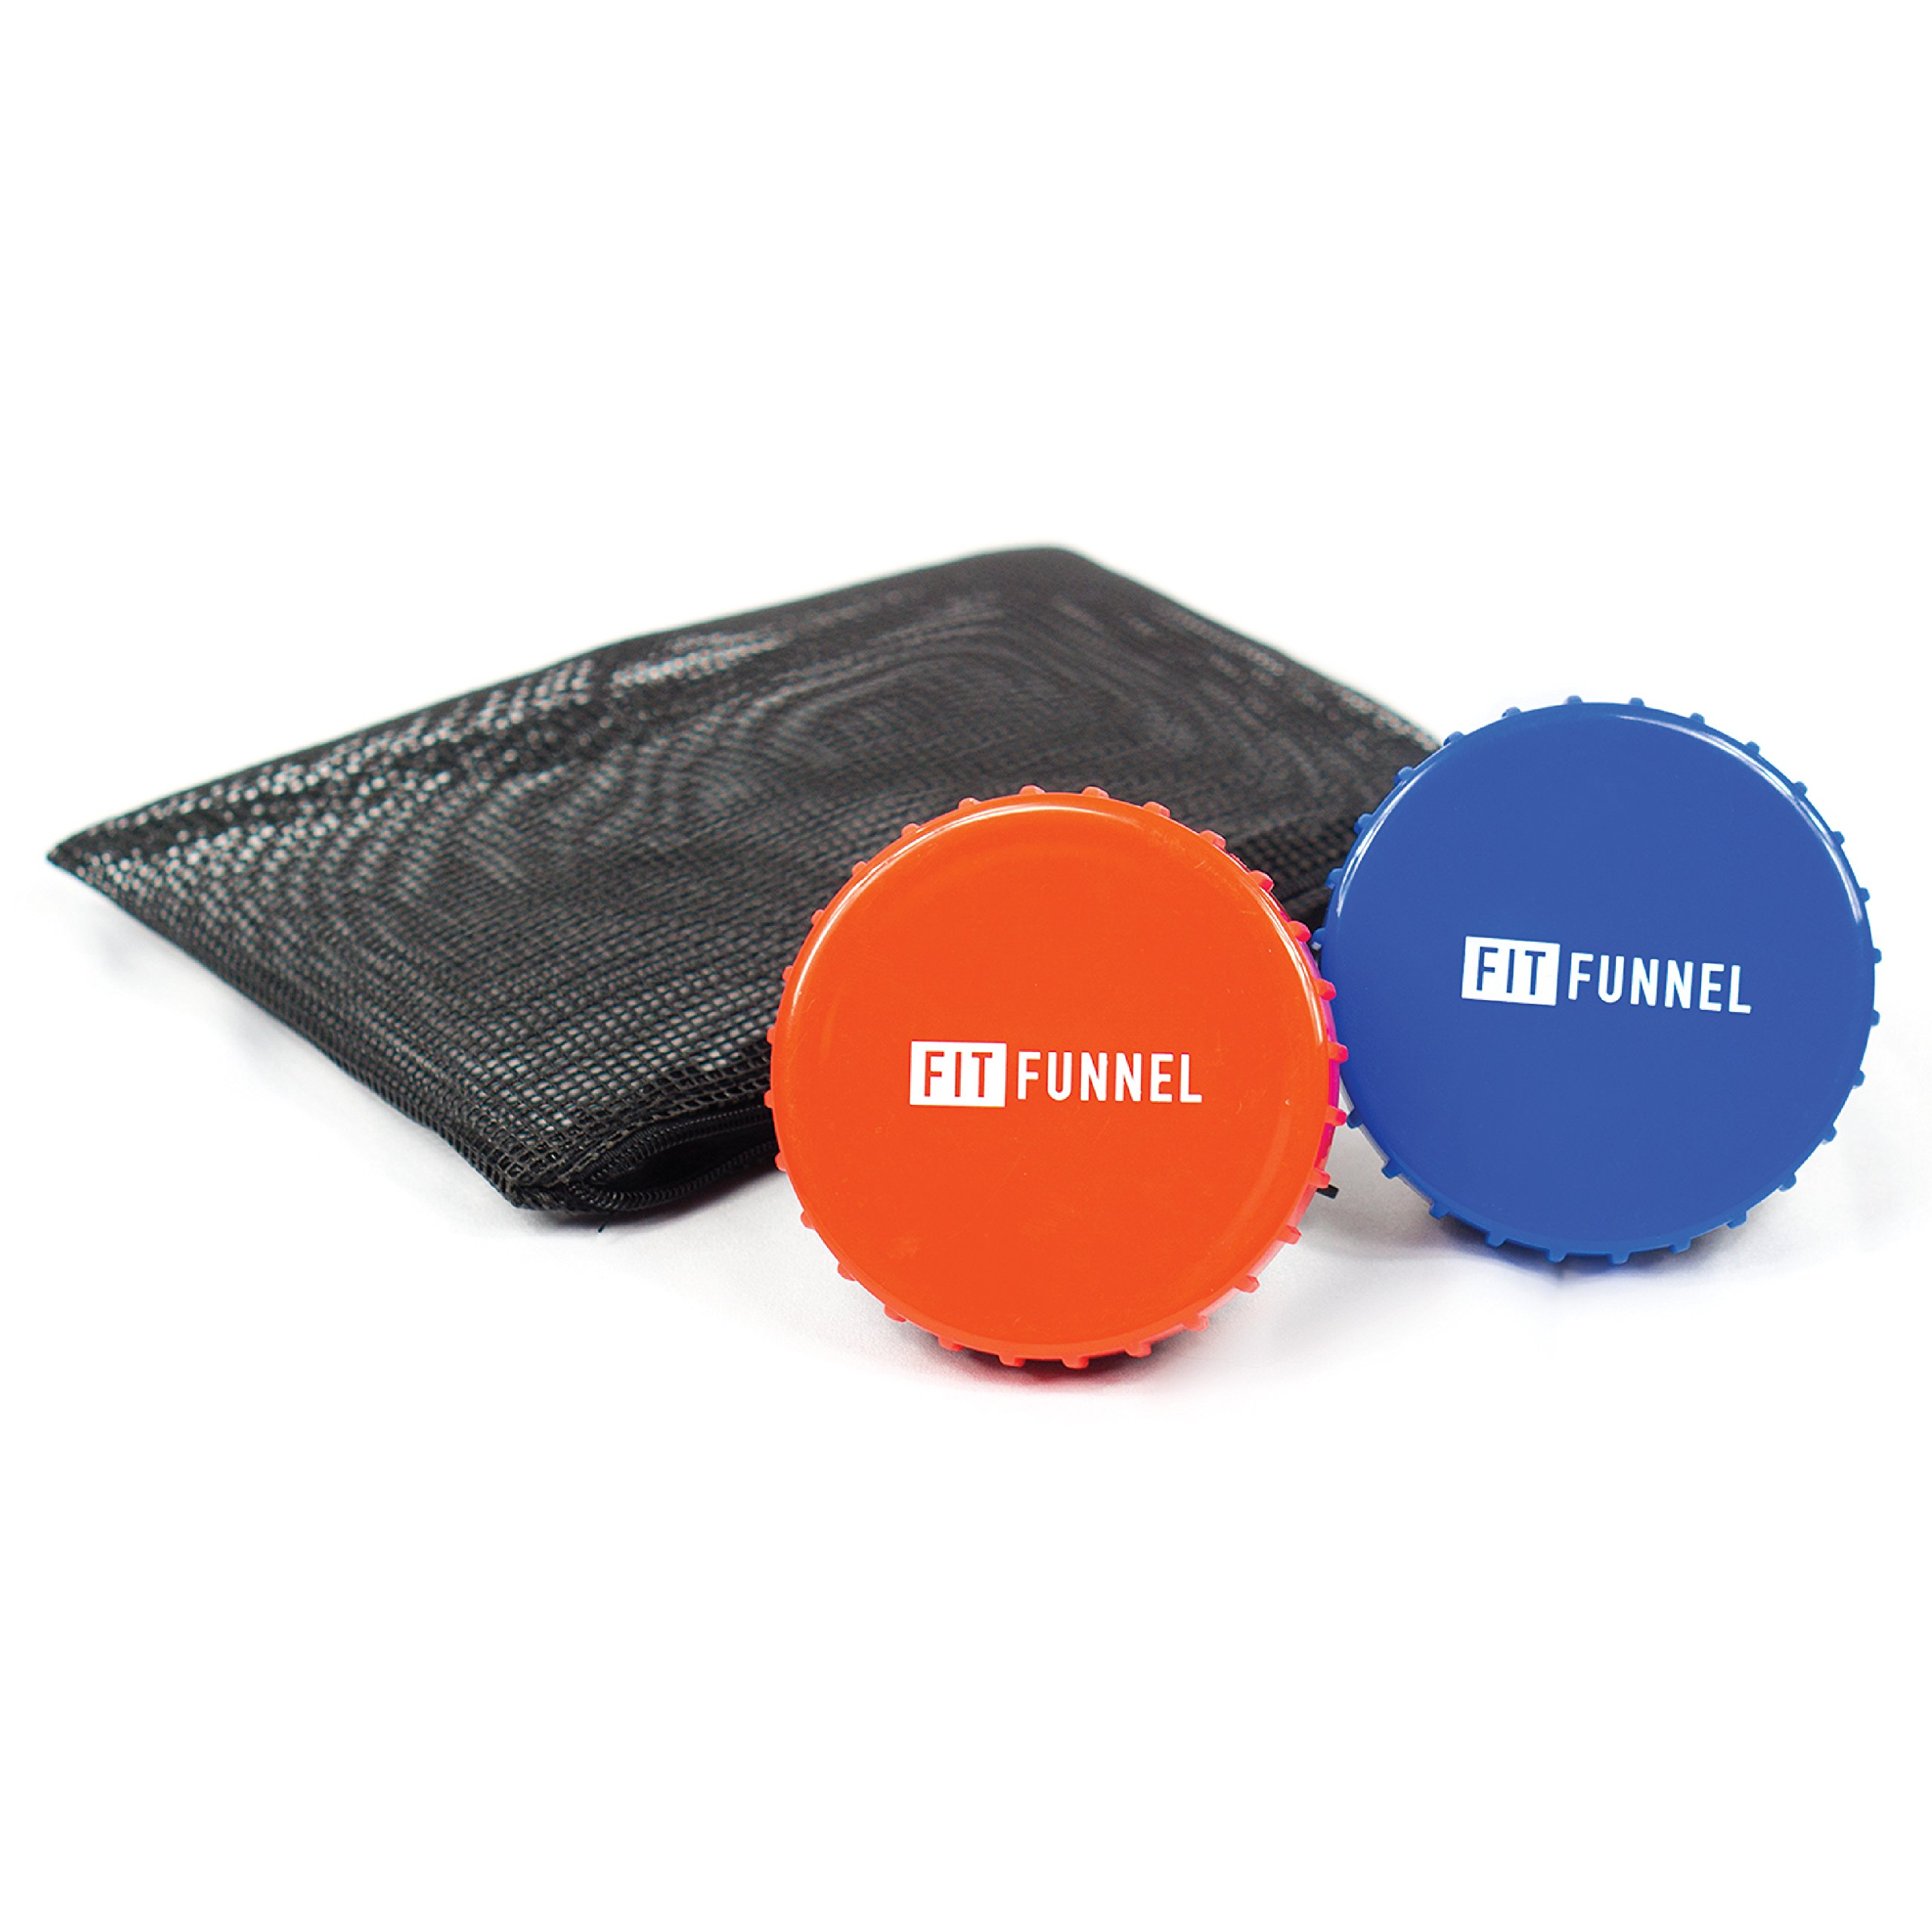 Details about Fit Funnel Protein Powder and Supplements Container | Fits  Standard-Size Water